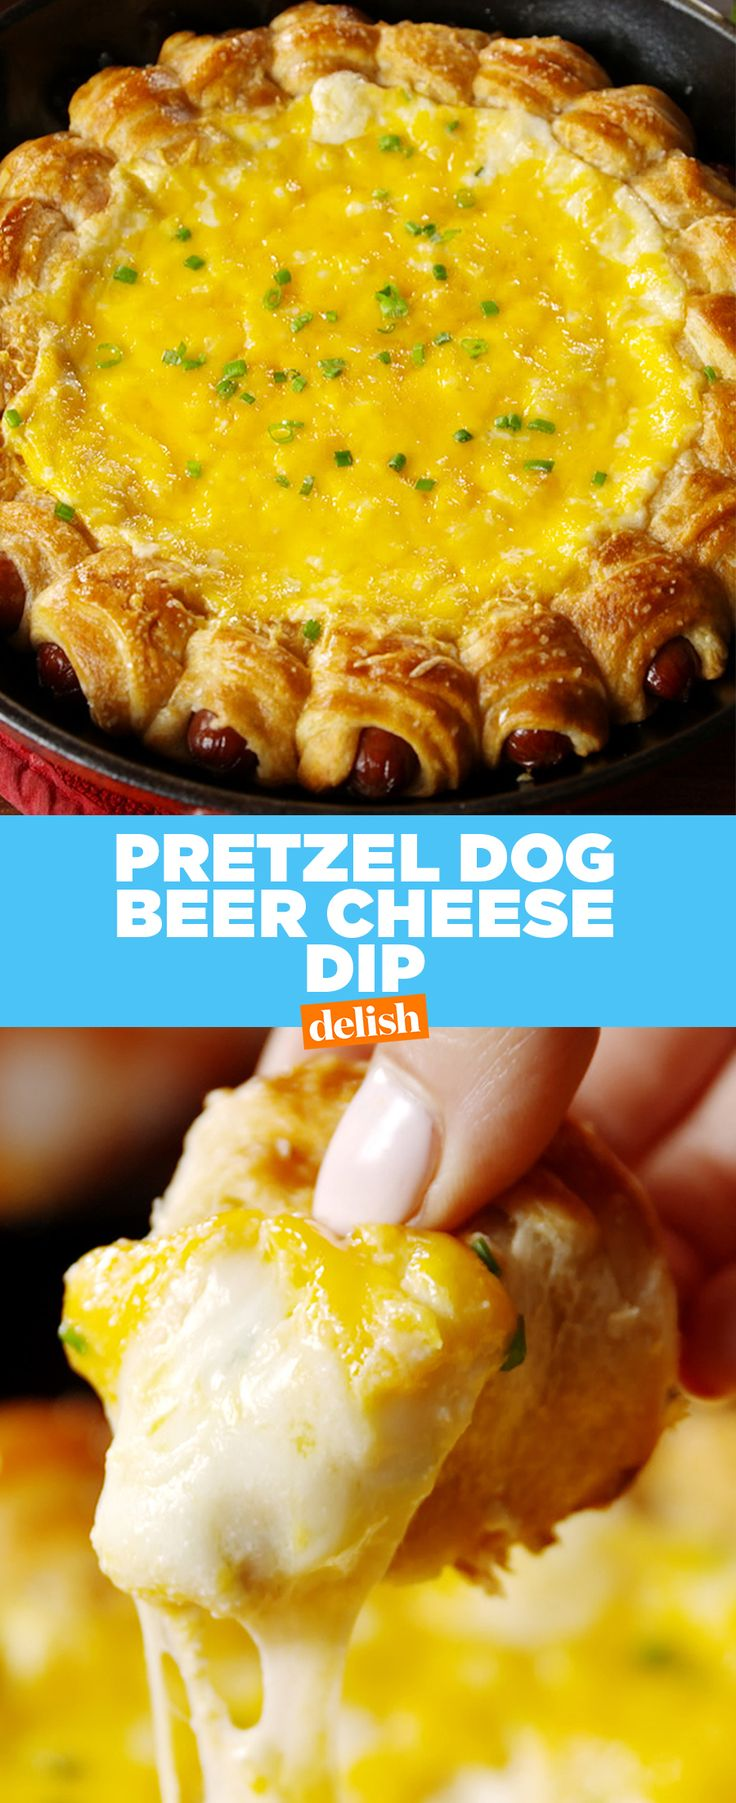 There's only one way to beat cheese chip dip — add hot dogs. Get the recipe from Delish.com.